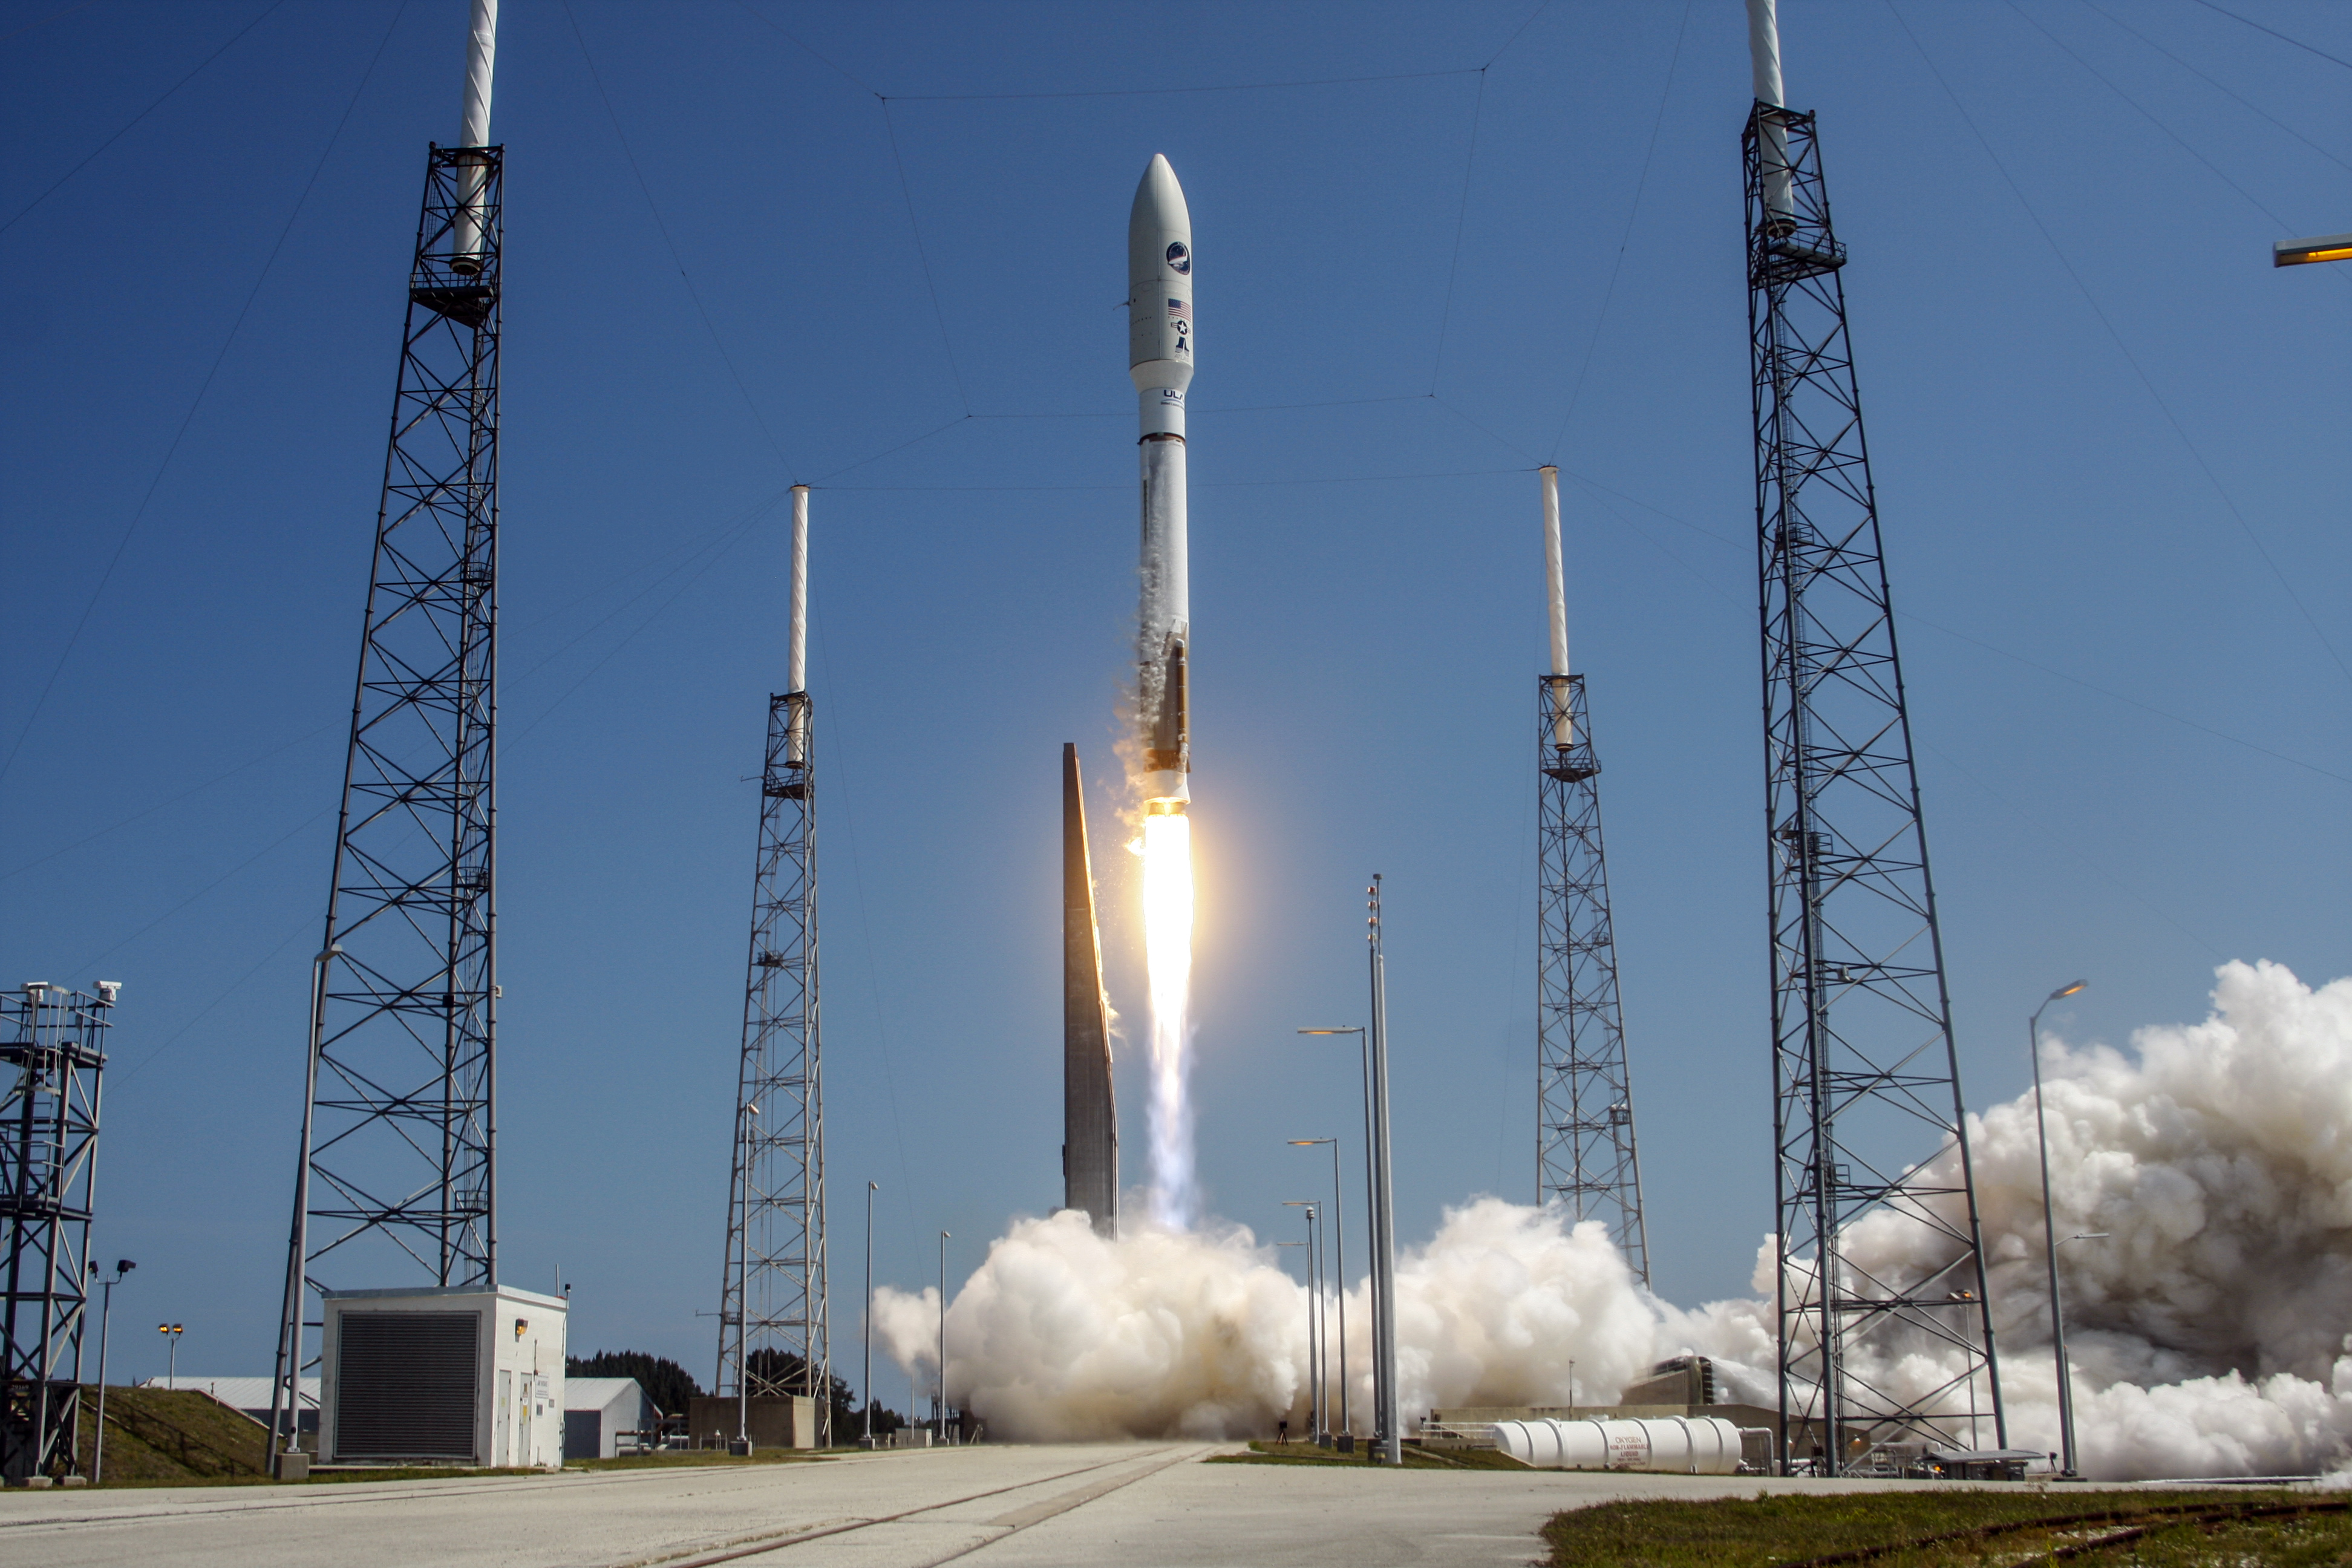 ULA in final pre-launch preps for Atlas V USSF-7 mission next week